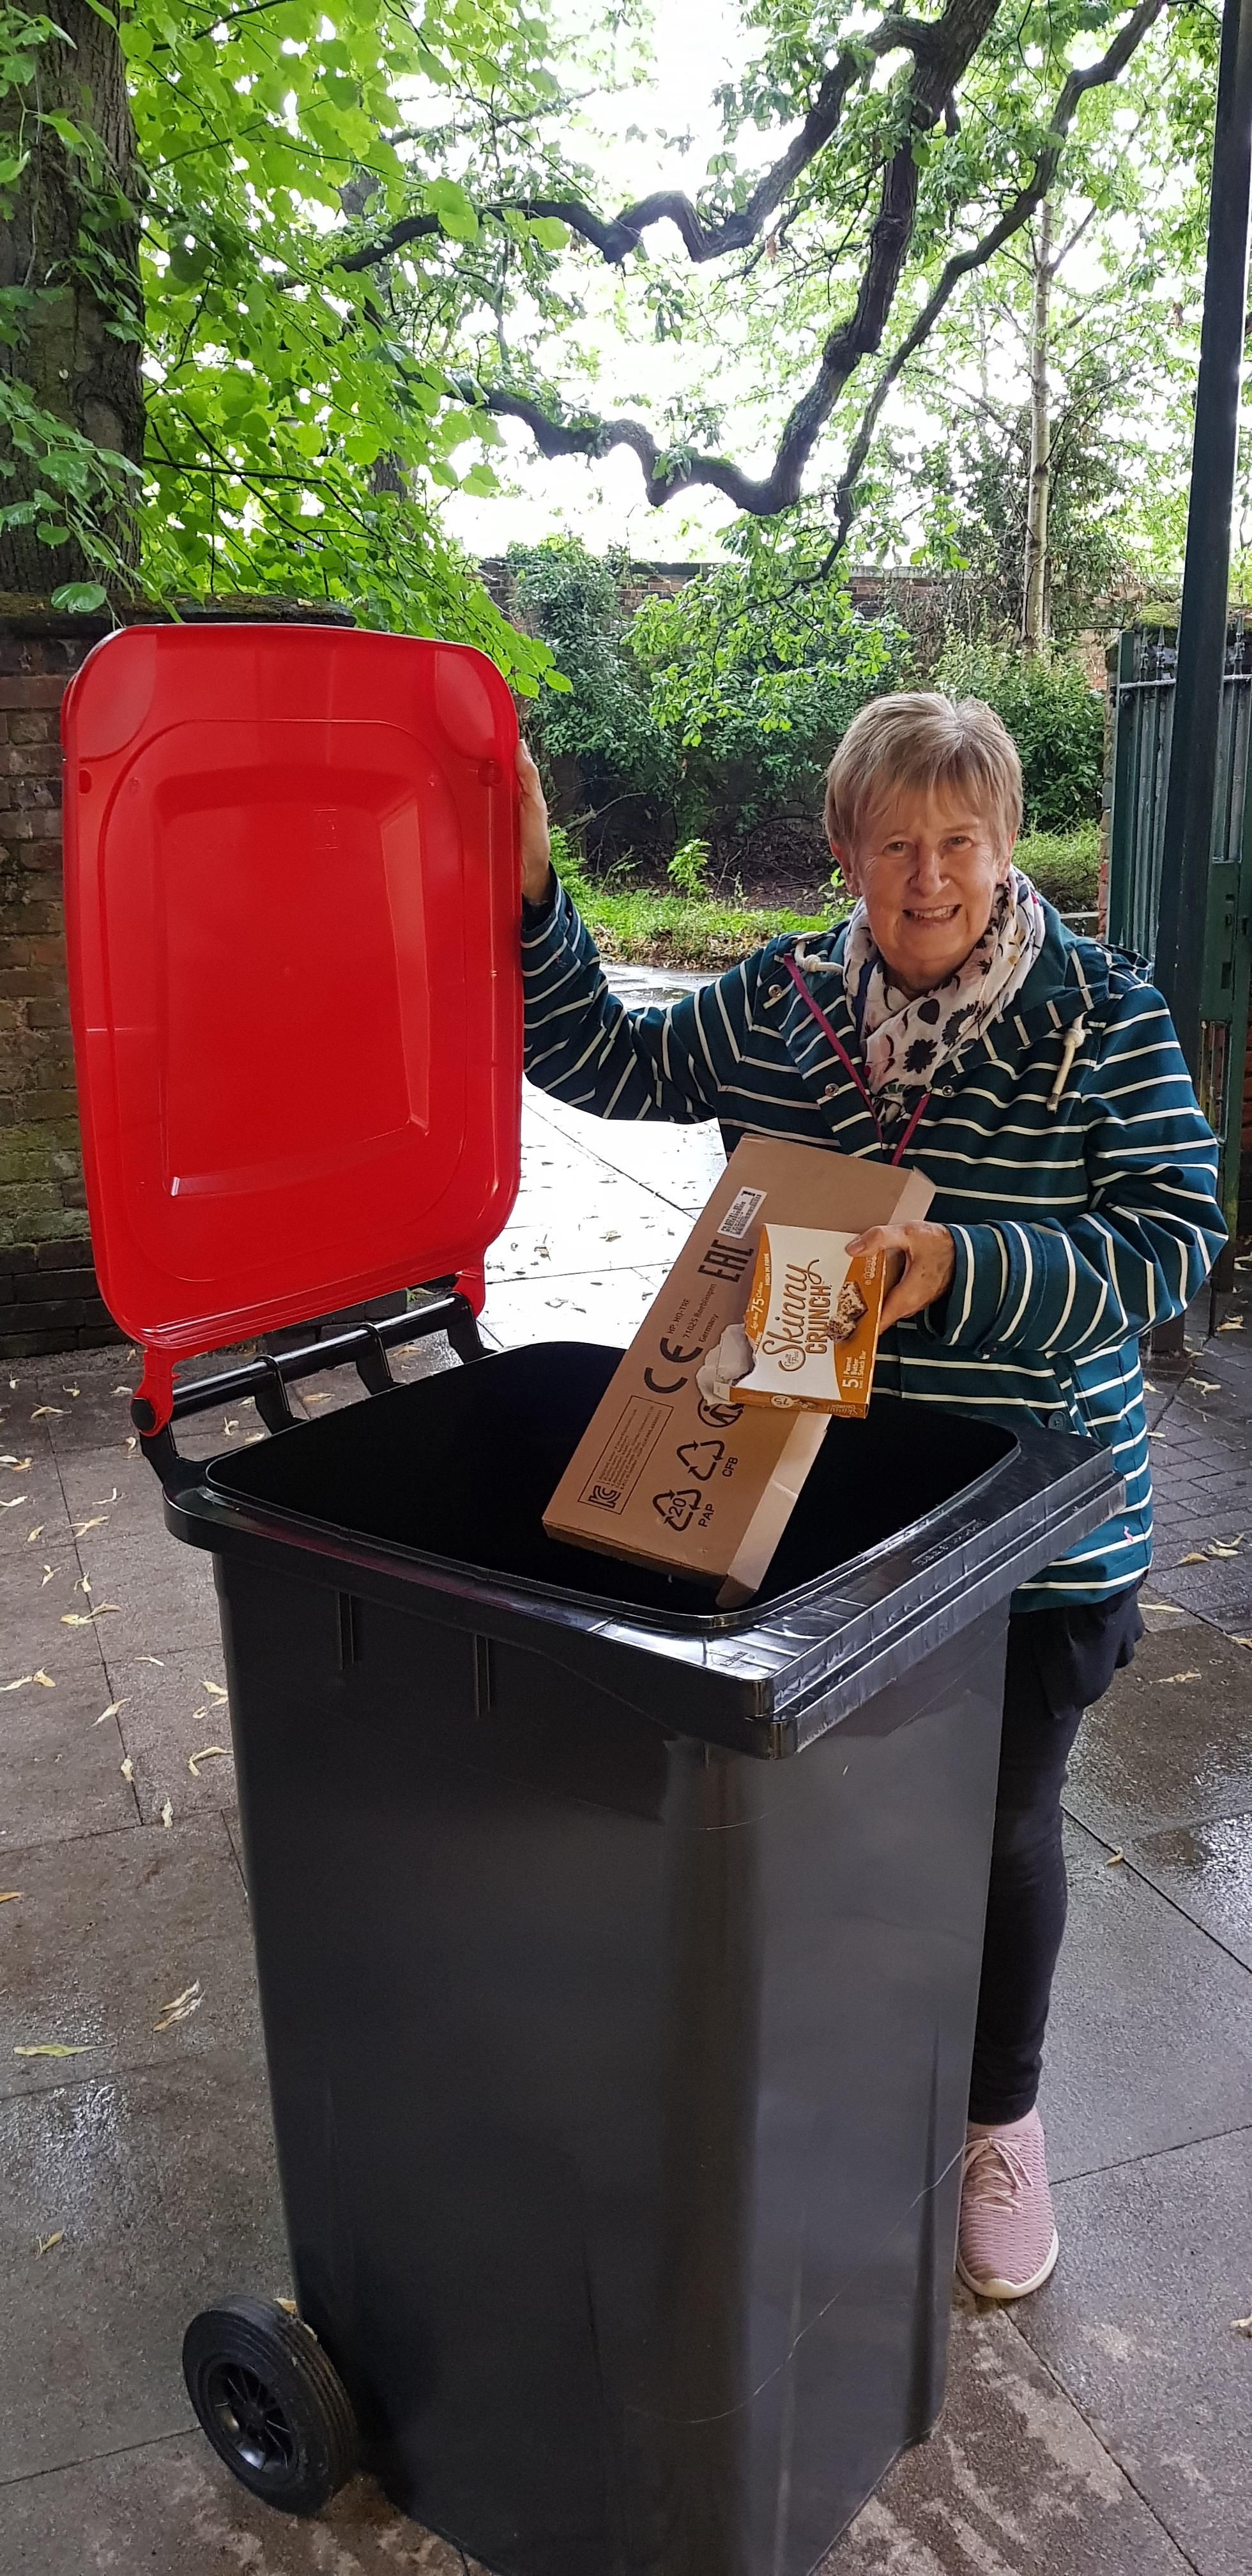 Cllrbellrecycling